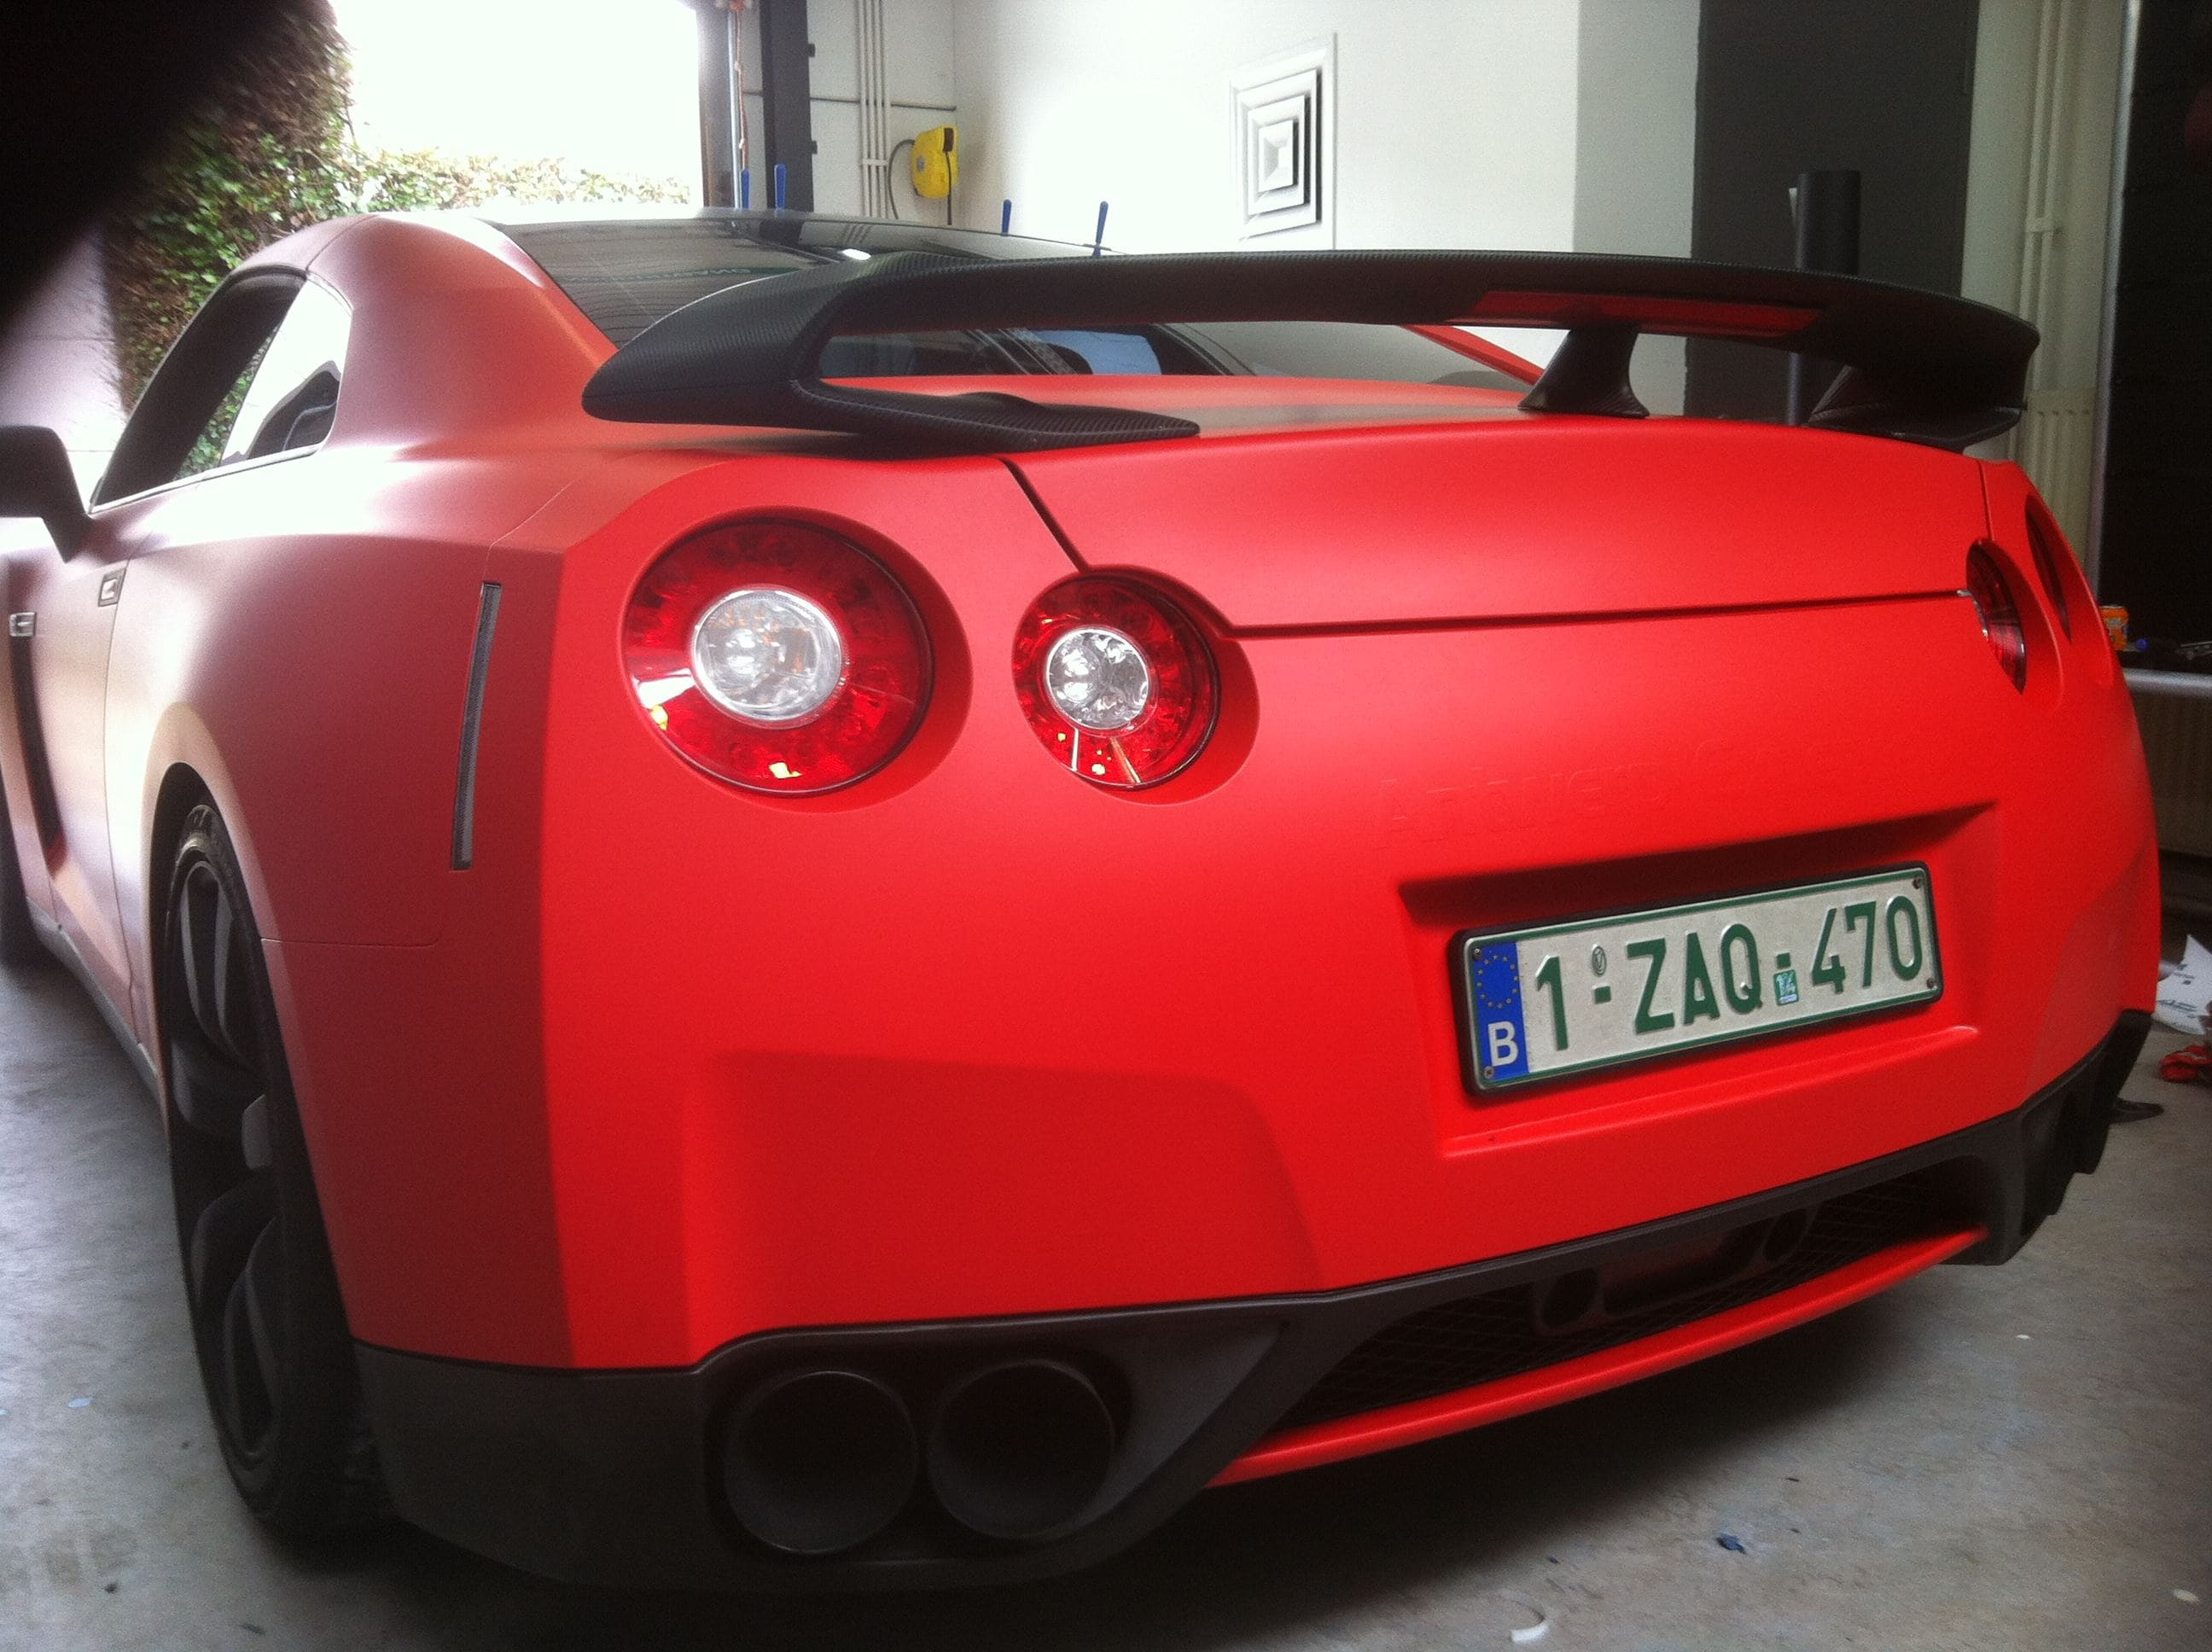 Nissan GT-R in Hotrod Rode Wrap, Carwrapping door Wrapmyride.nu Foto-nr:6497, ©2020